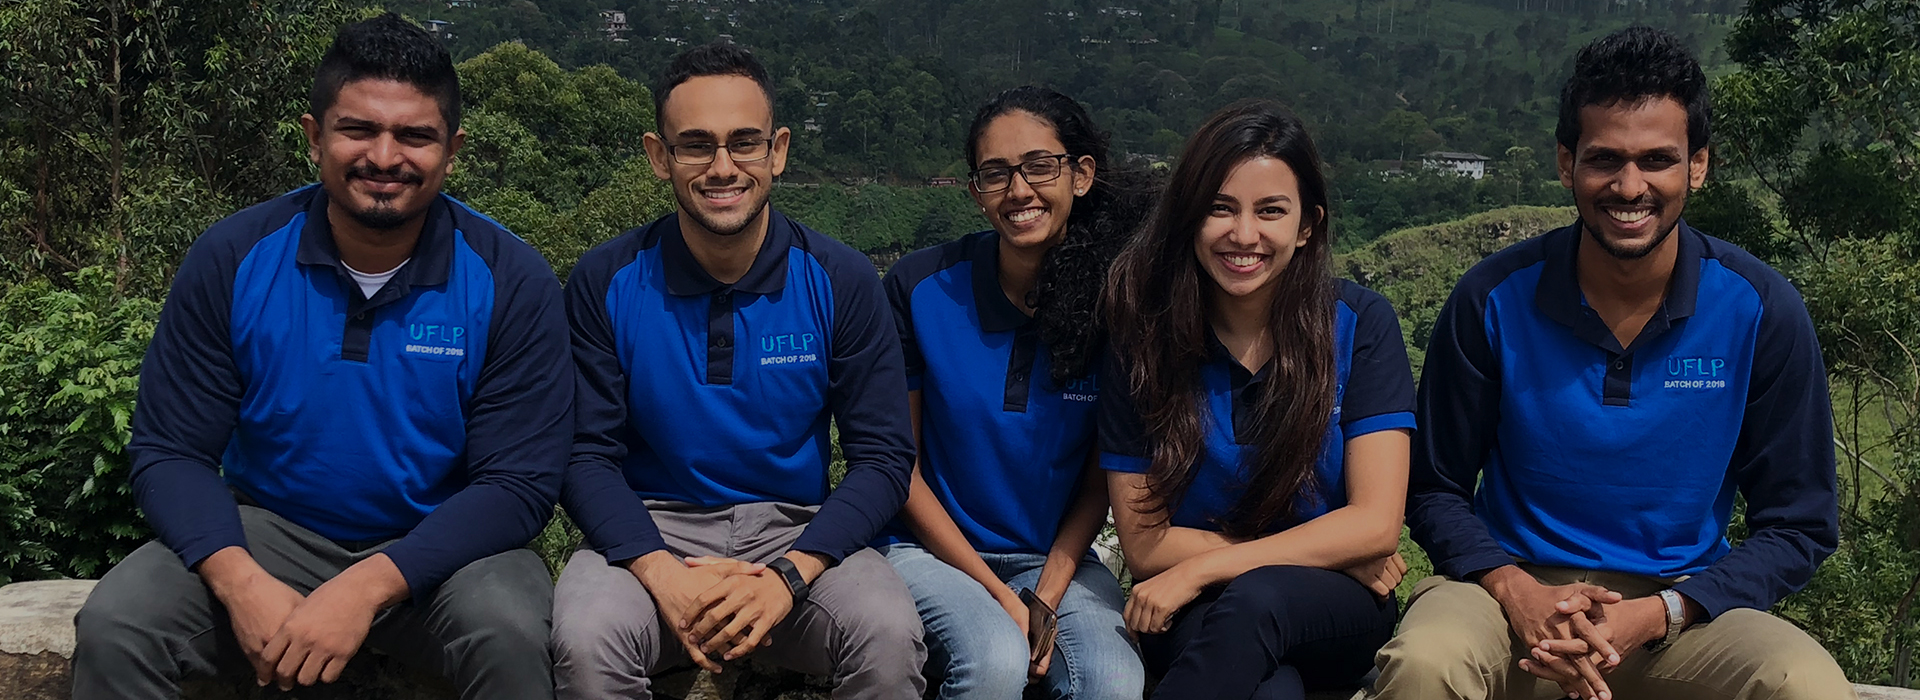 5 smiling people sitting in a row outside in UFLP branded shirts